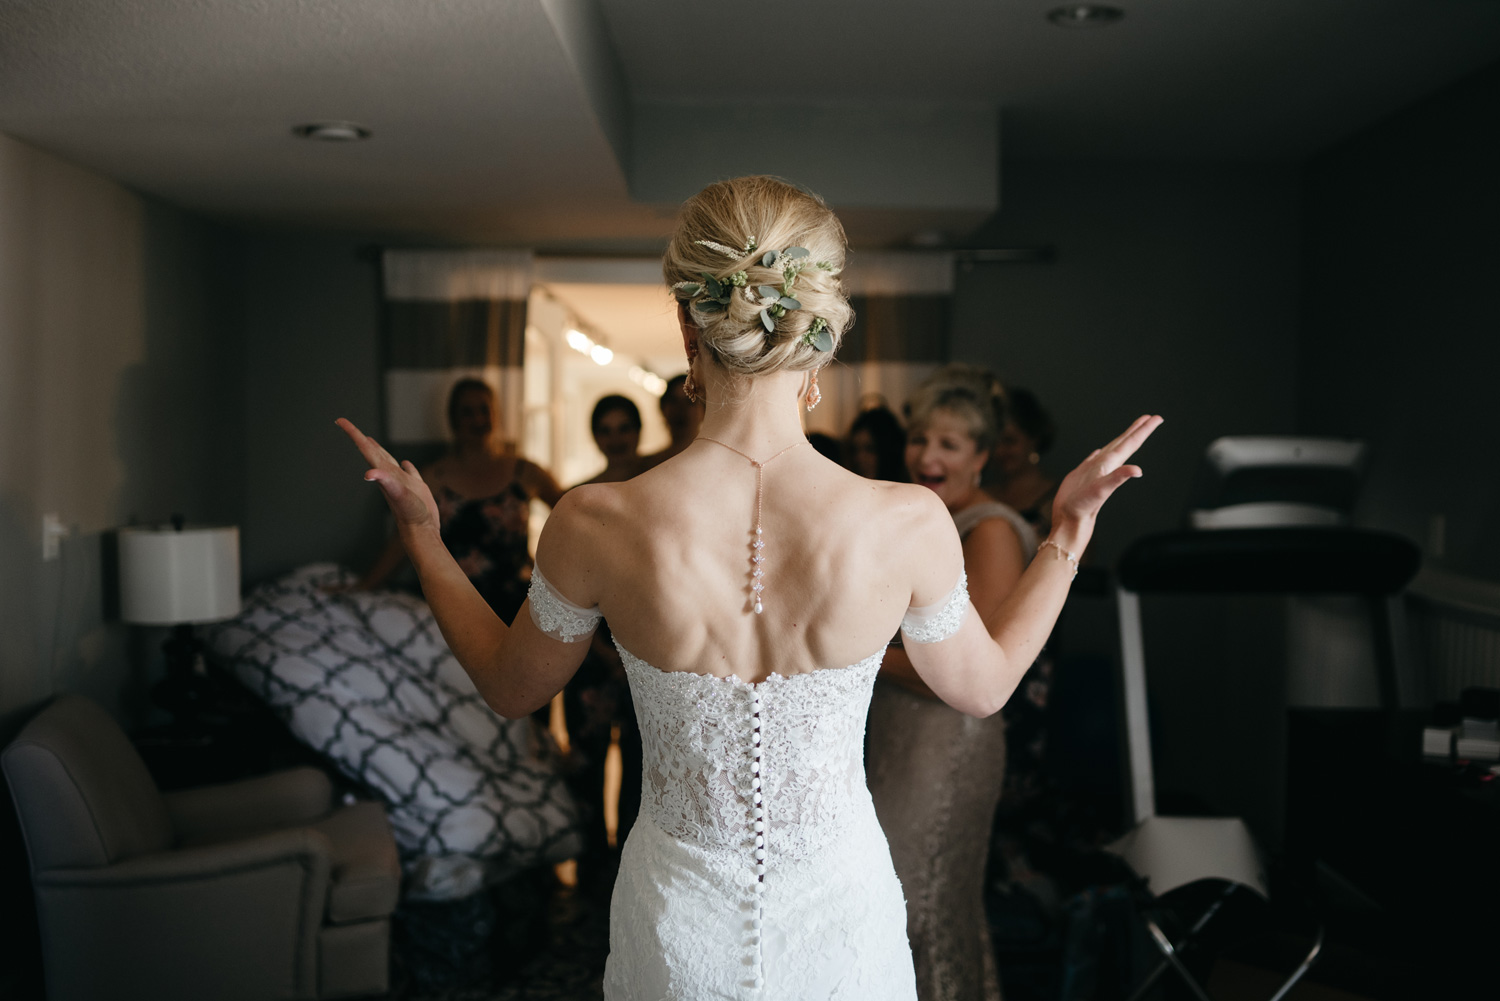 Bride showing off her dress from behind